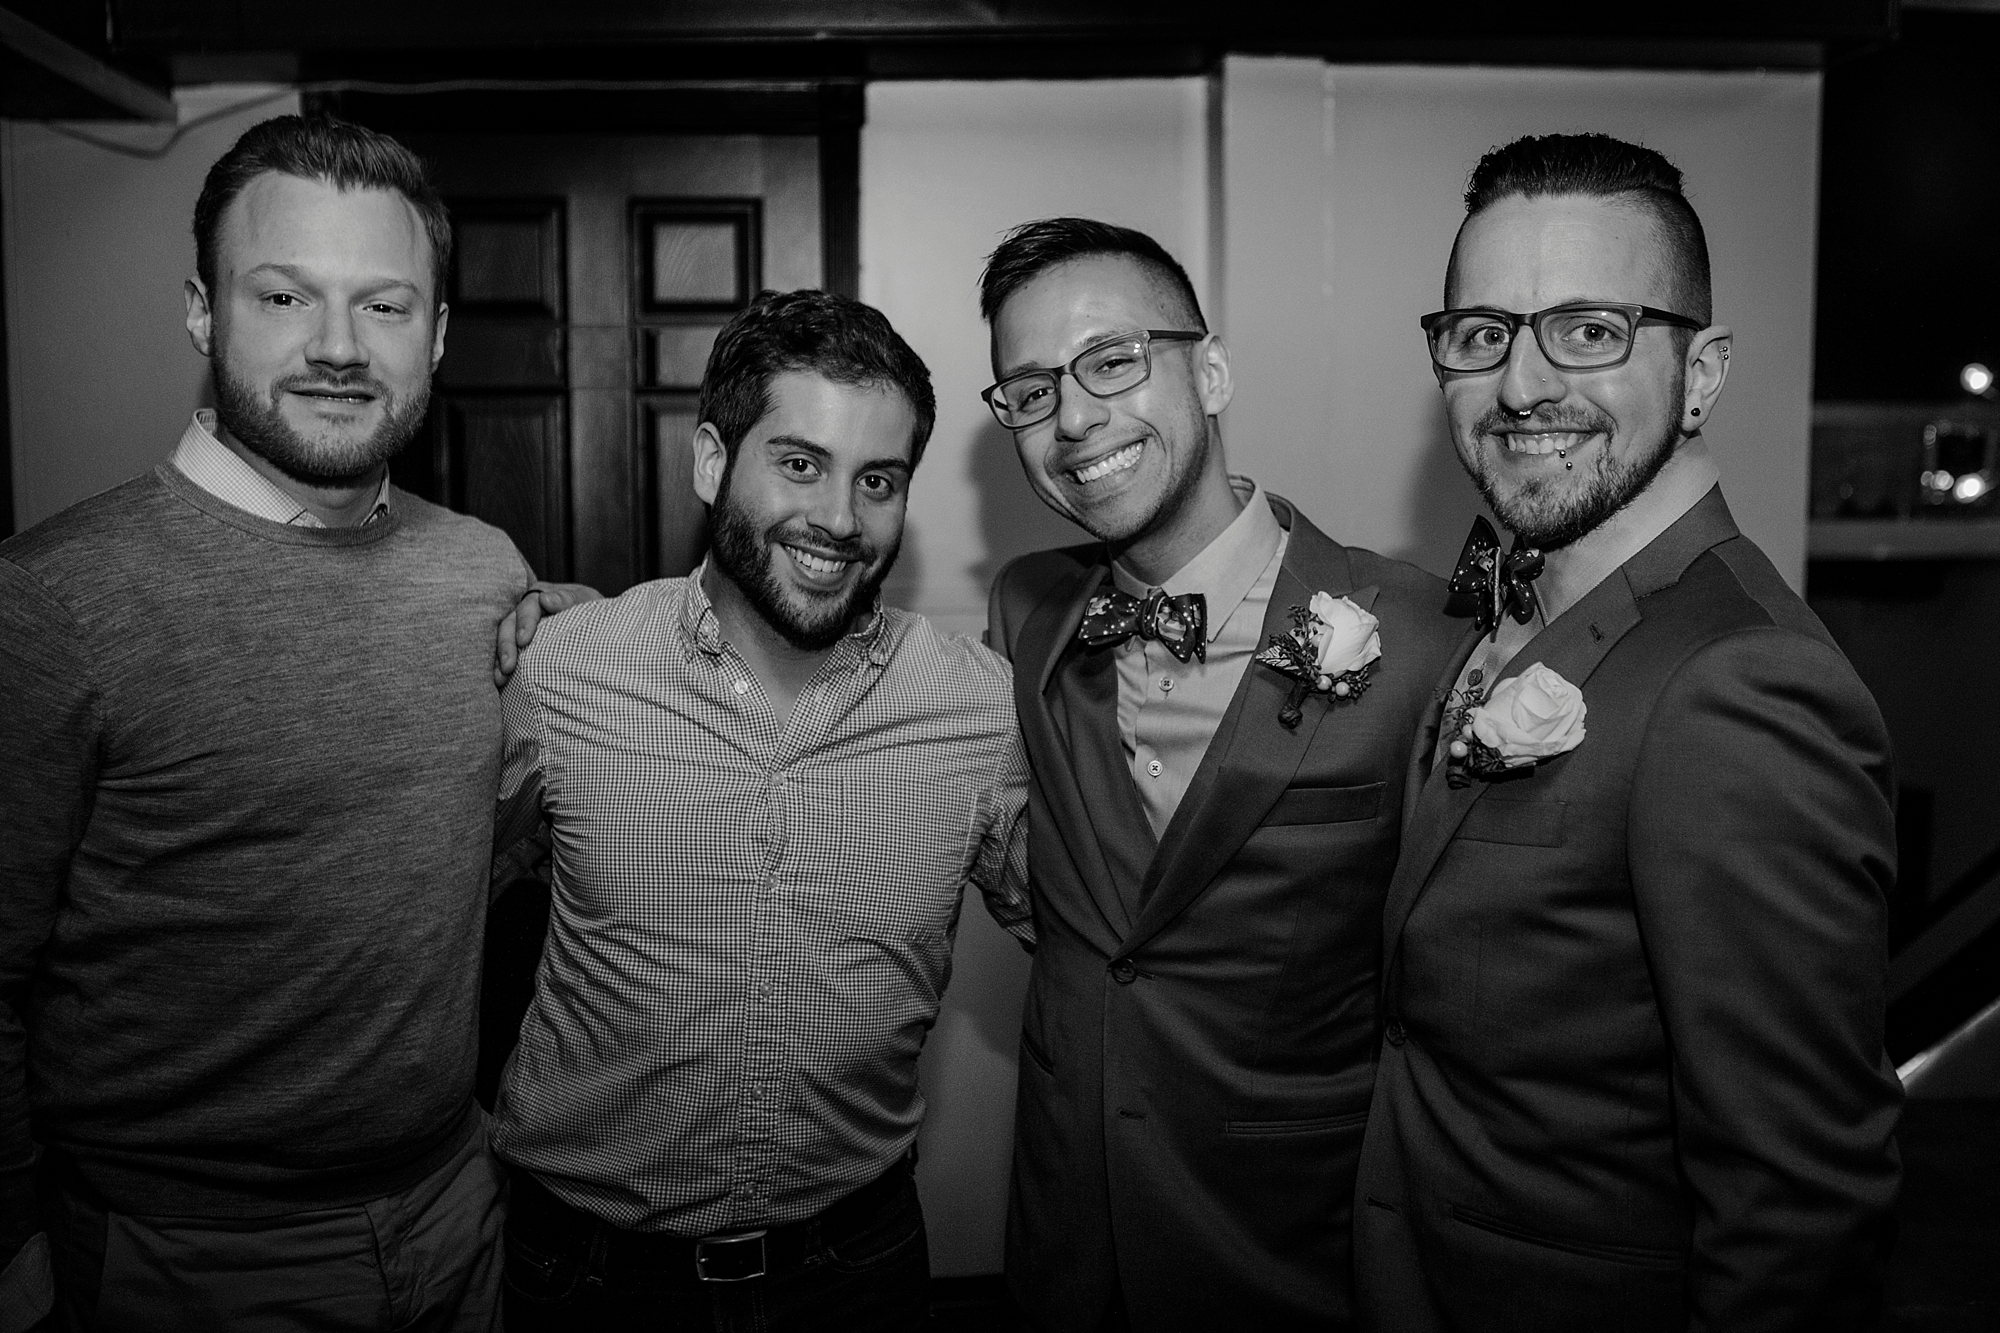 Joe_Mac_Creative_Philadelphia_Philly_LGBT_Gay_Engagement_Wedding_Photography__0155.jpg